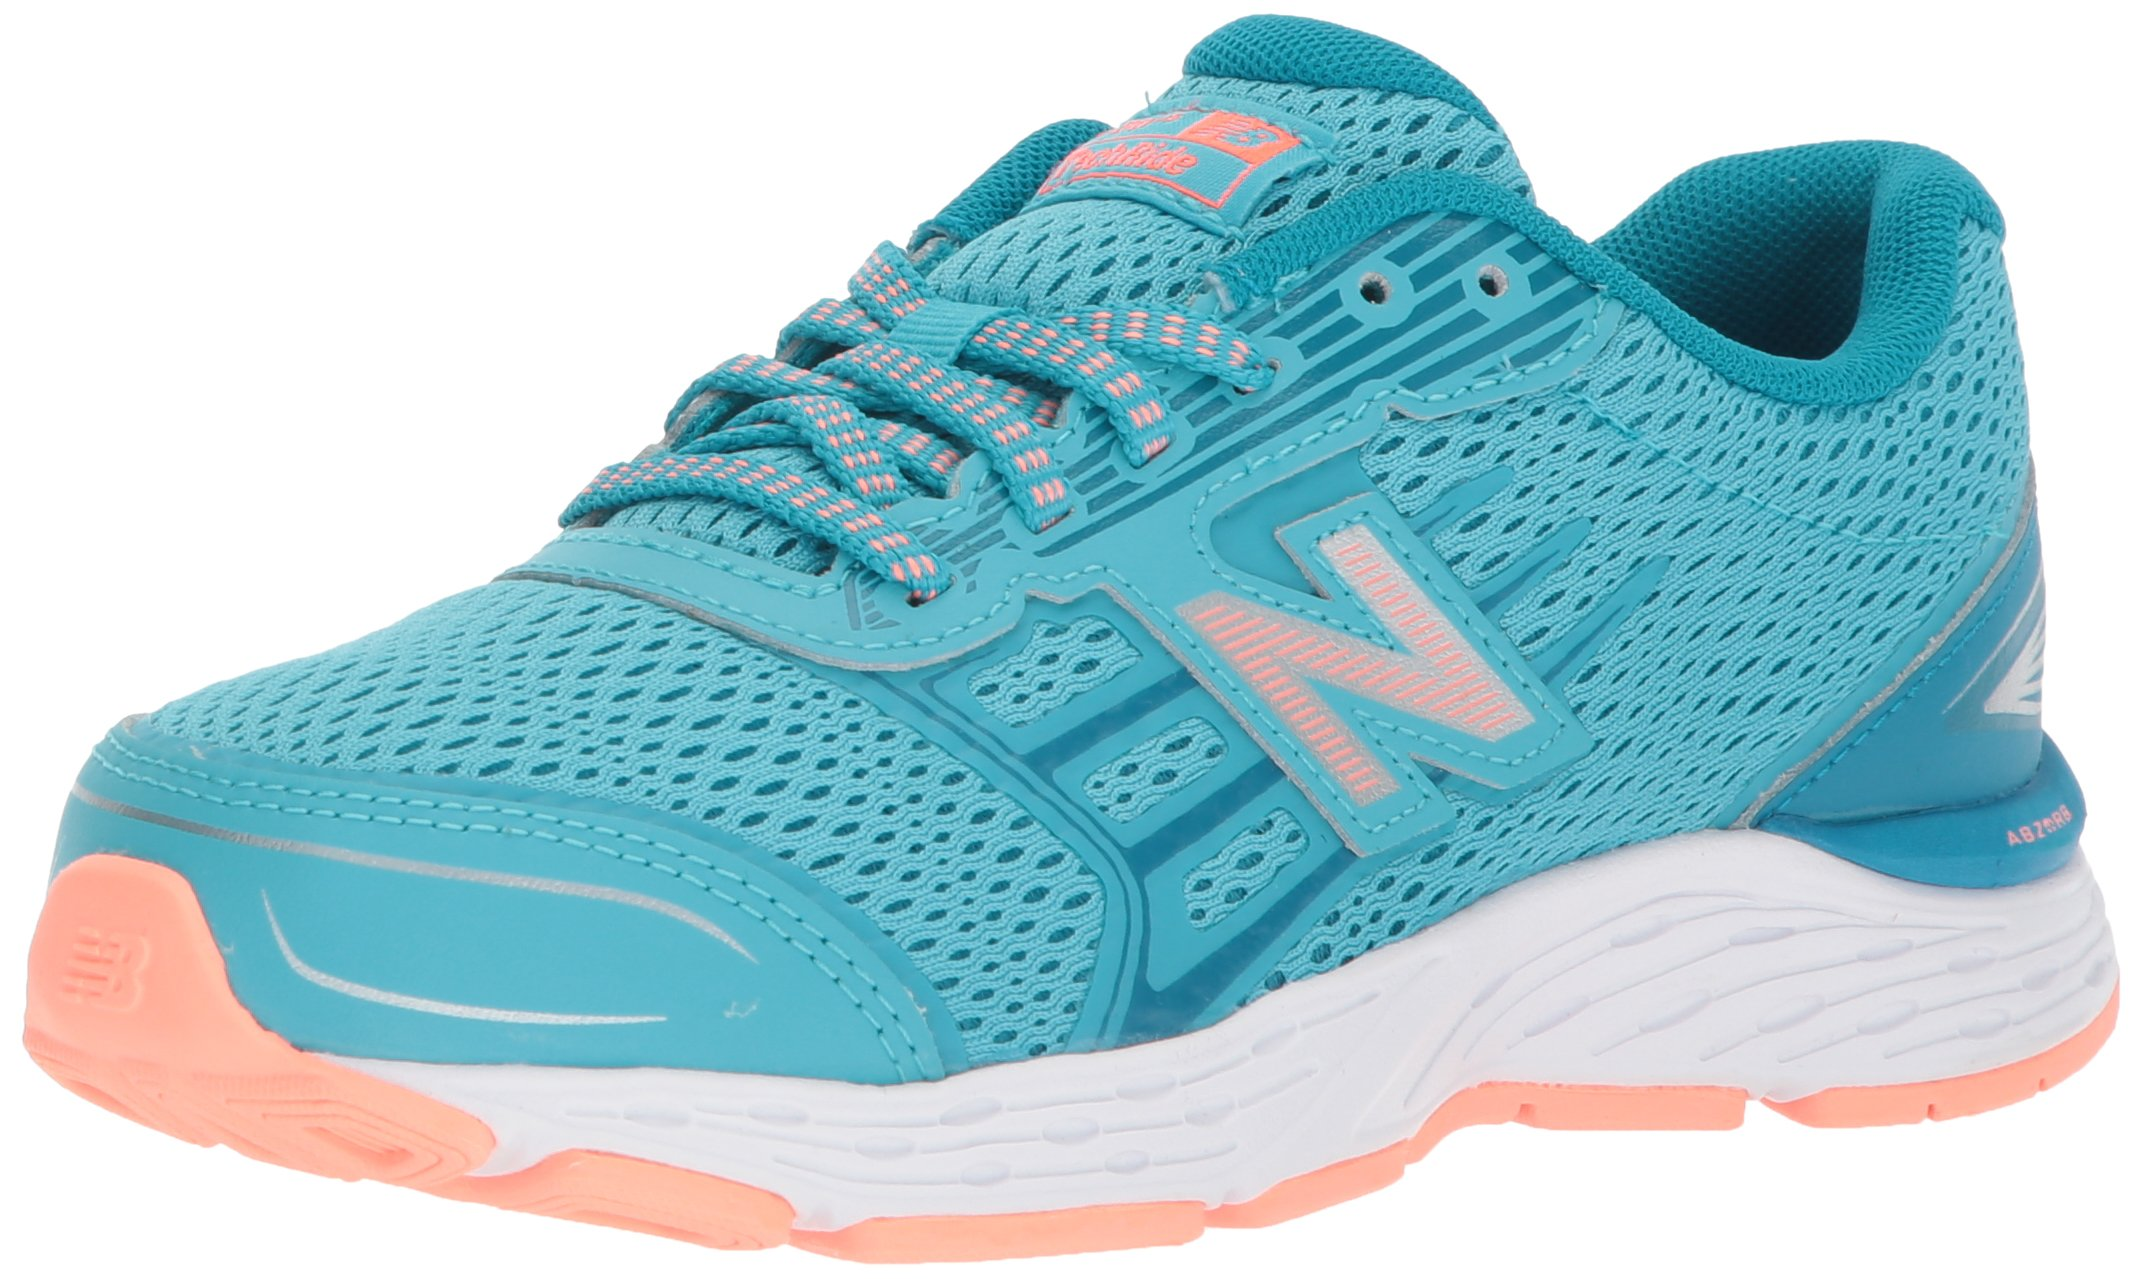 New Balance Girls' 680v5 Running Shoe, Ozone Blue/Fiji, 12 M US Little Kid